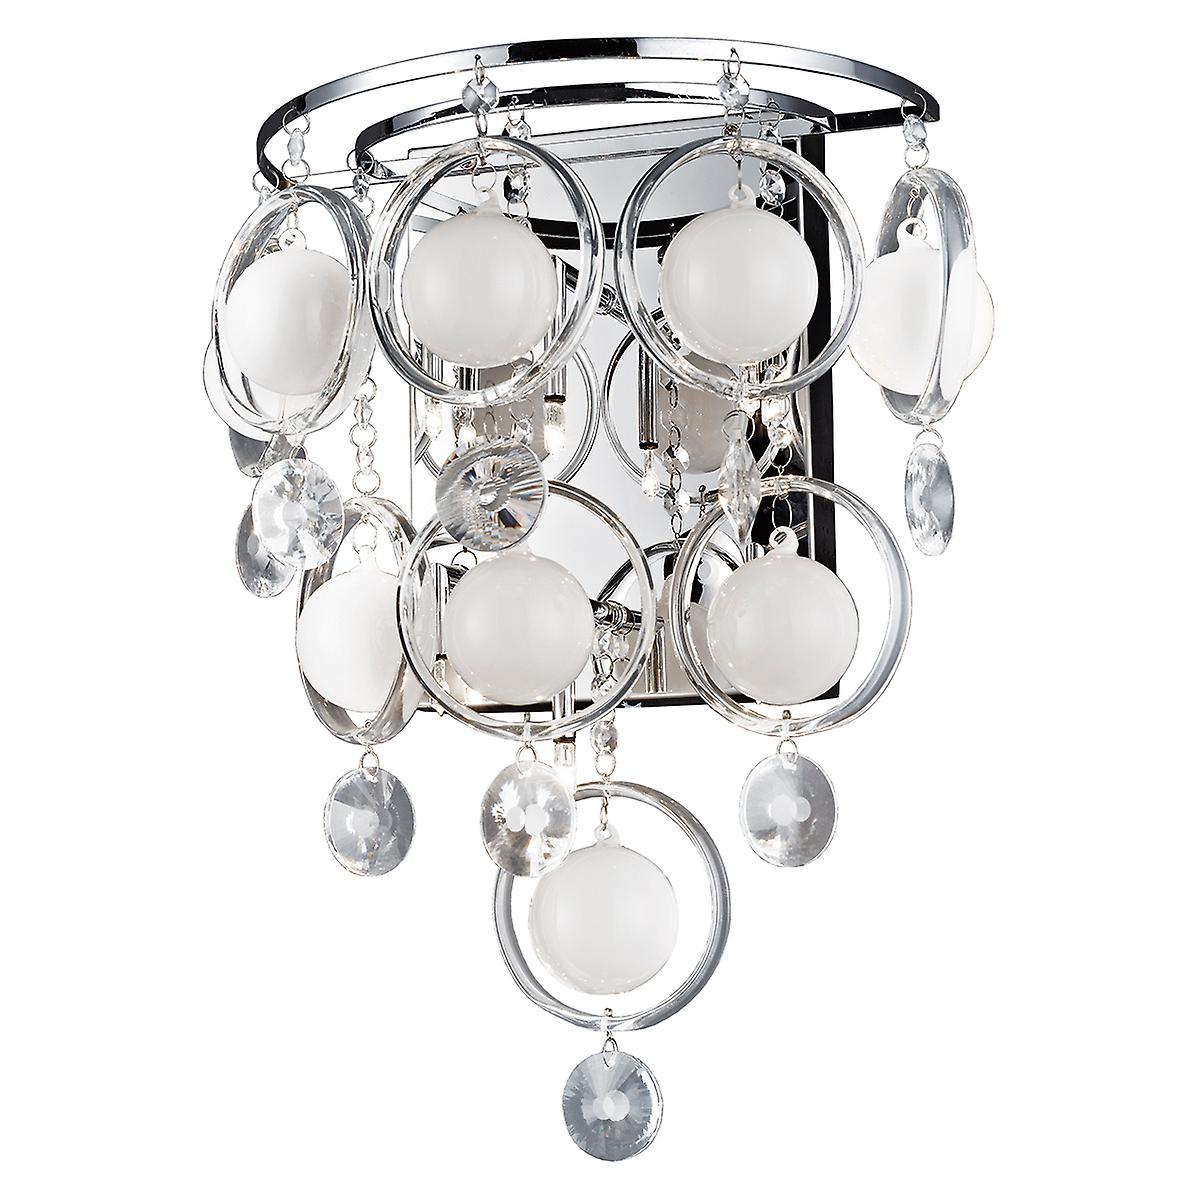 Dar CLO3050 Cloud Modern Chrome 6 Light Halogen Crystal Wall Light